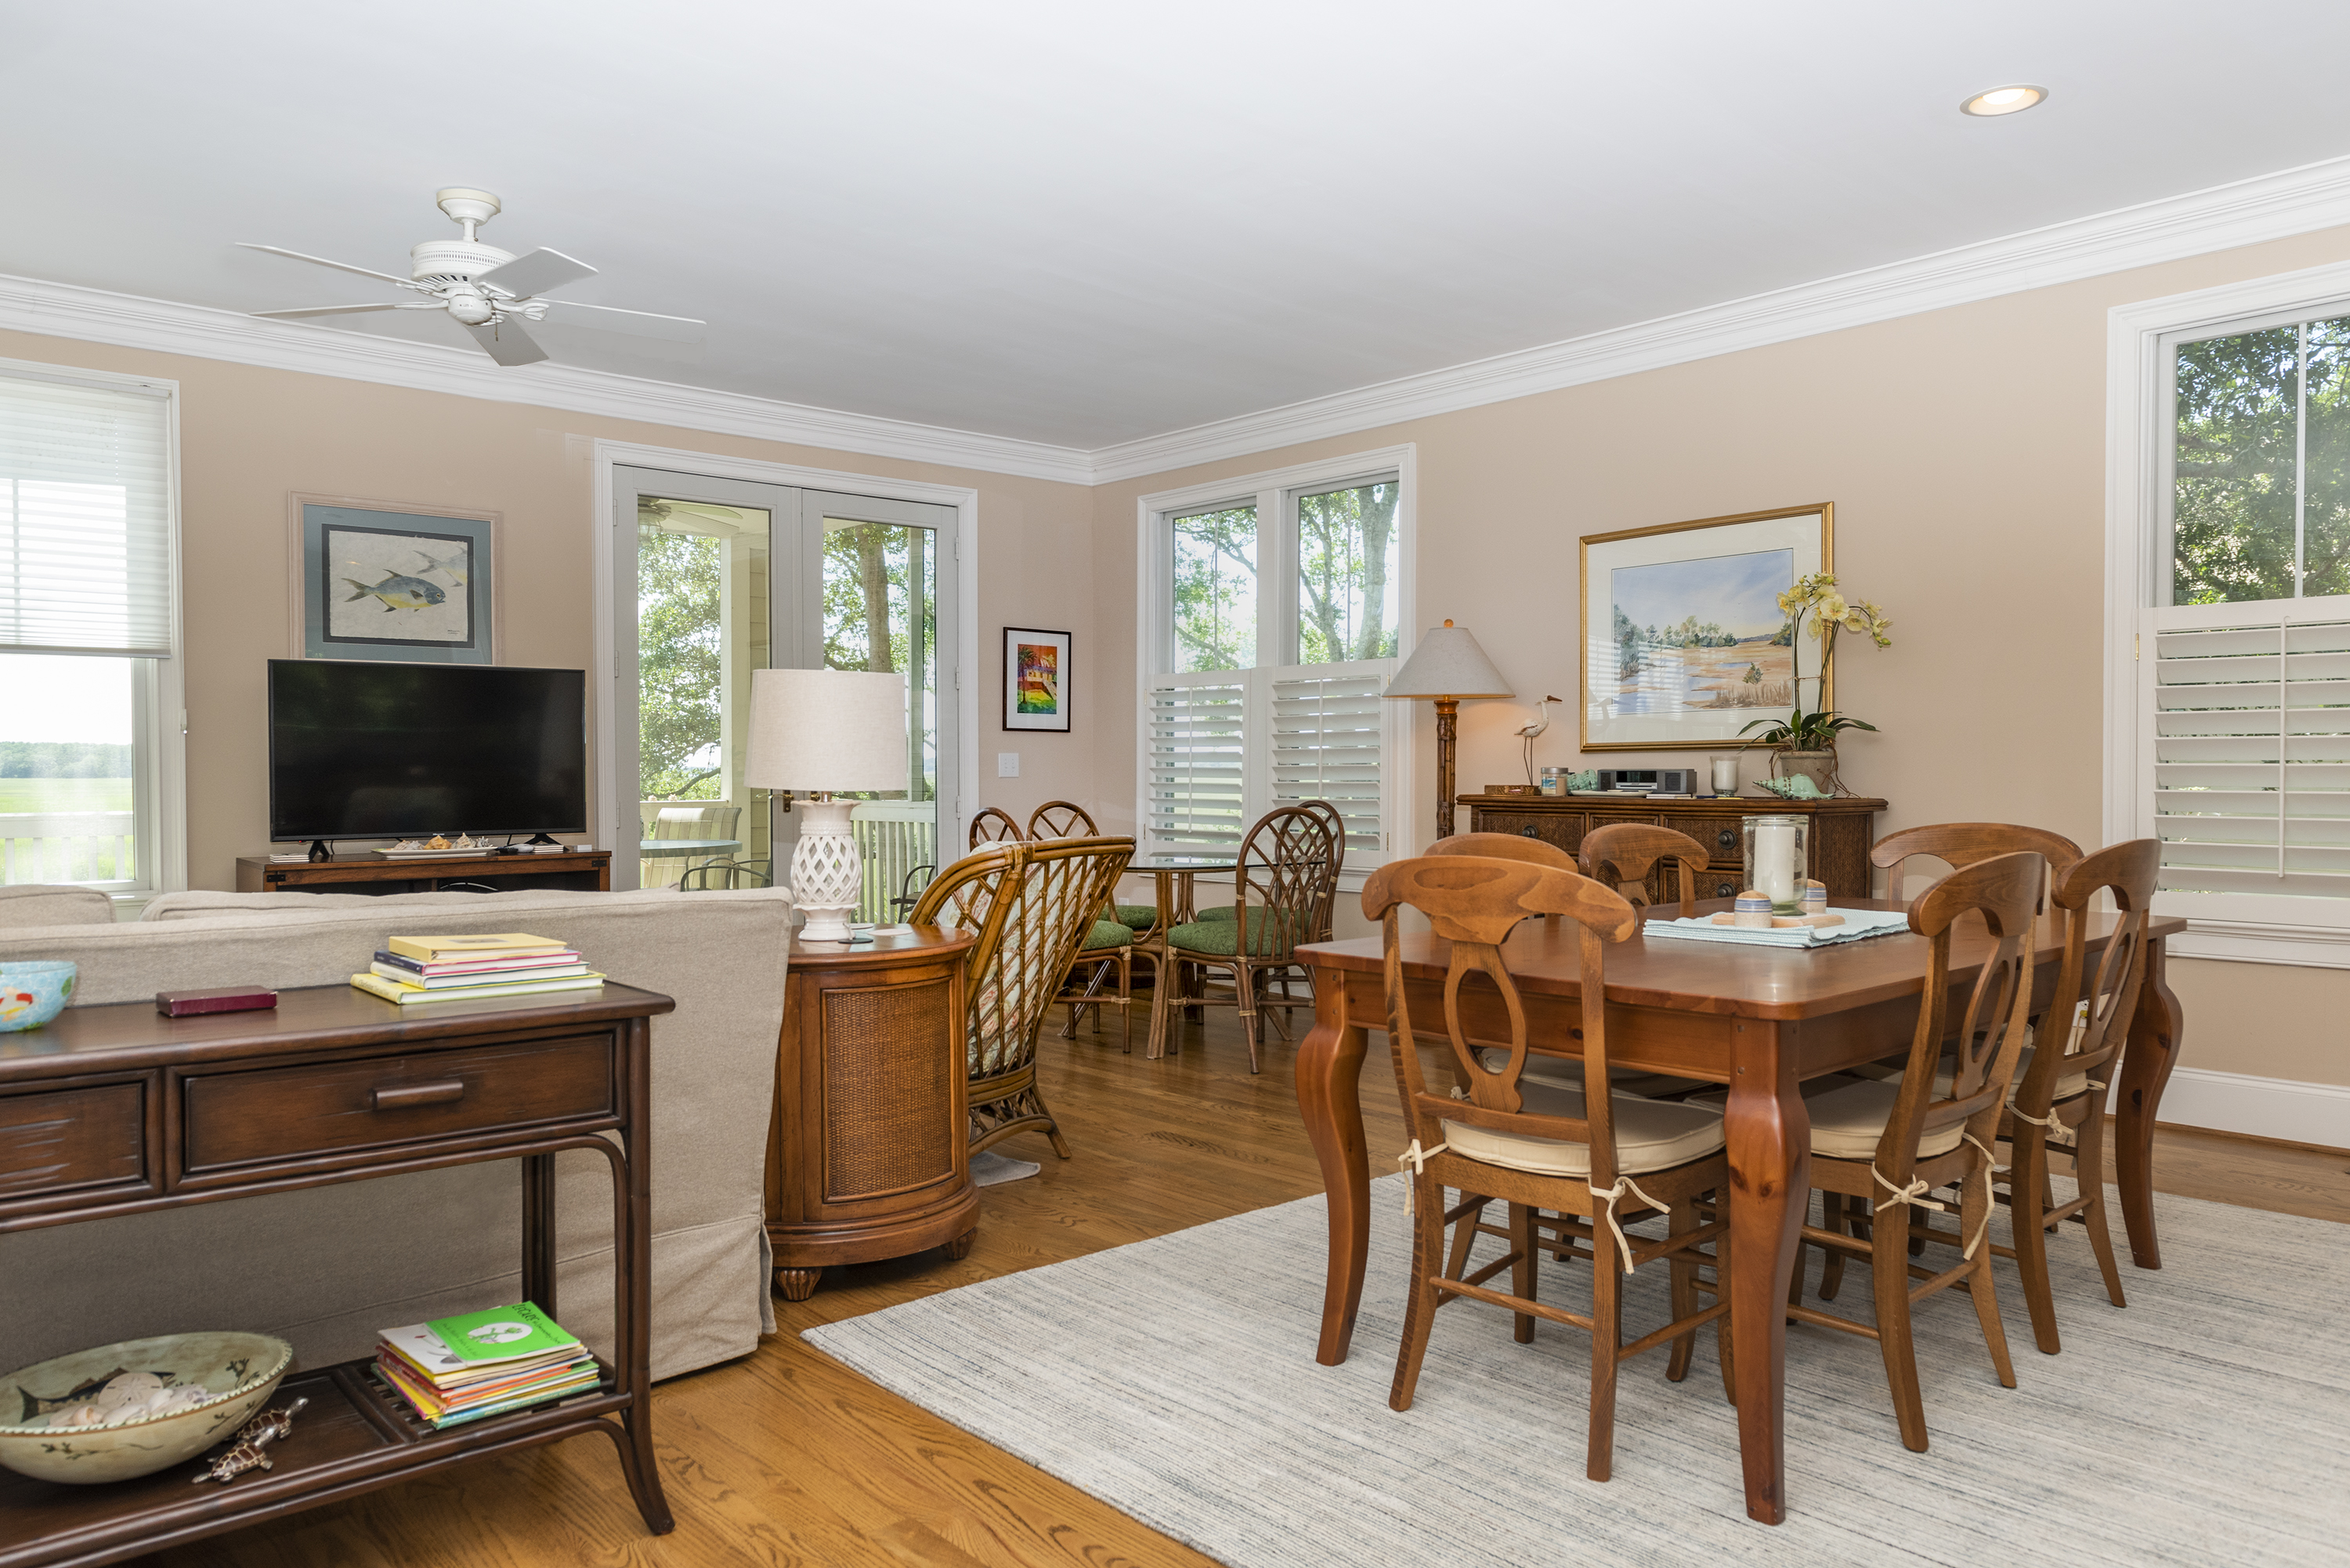 Multiple dining options and french doors leading to the screened porch.